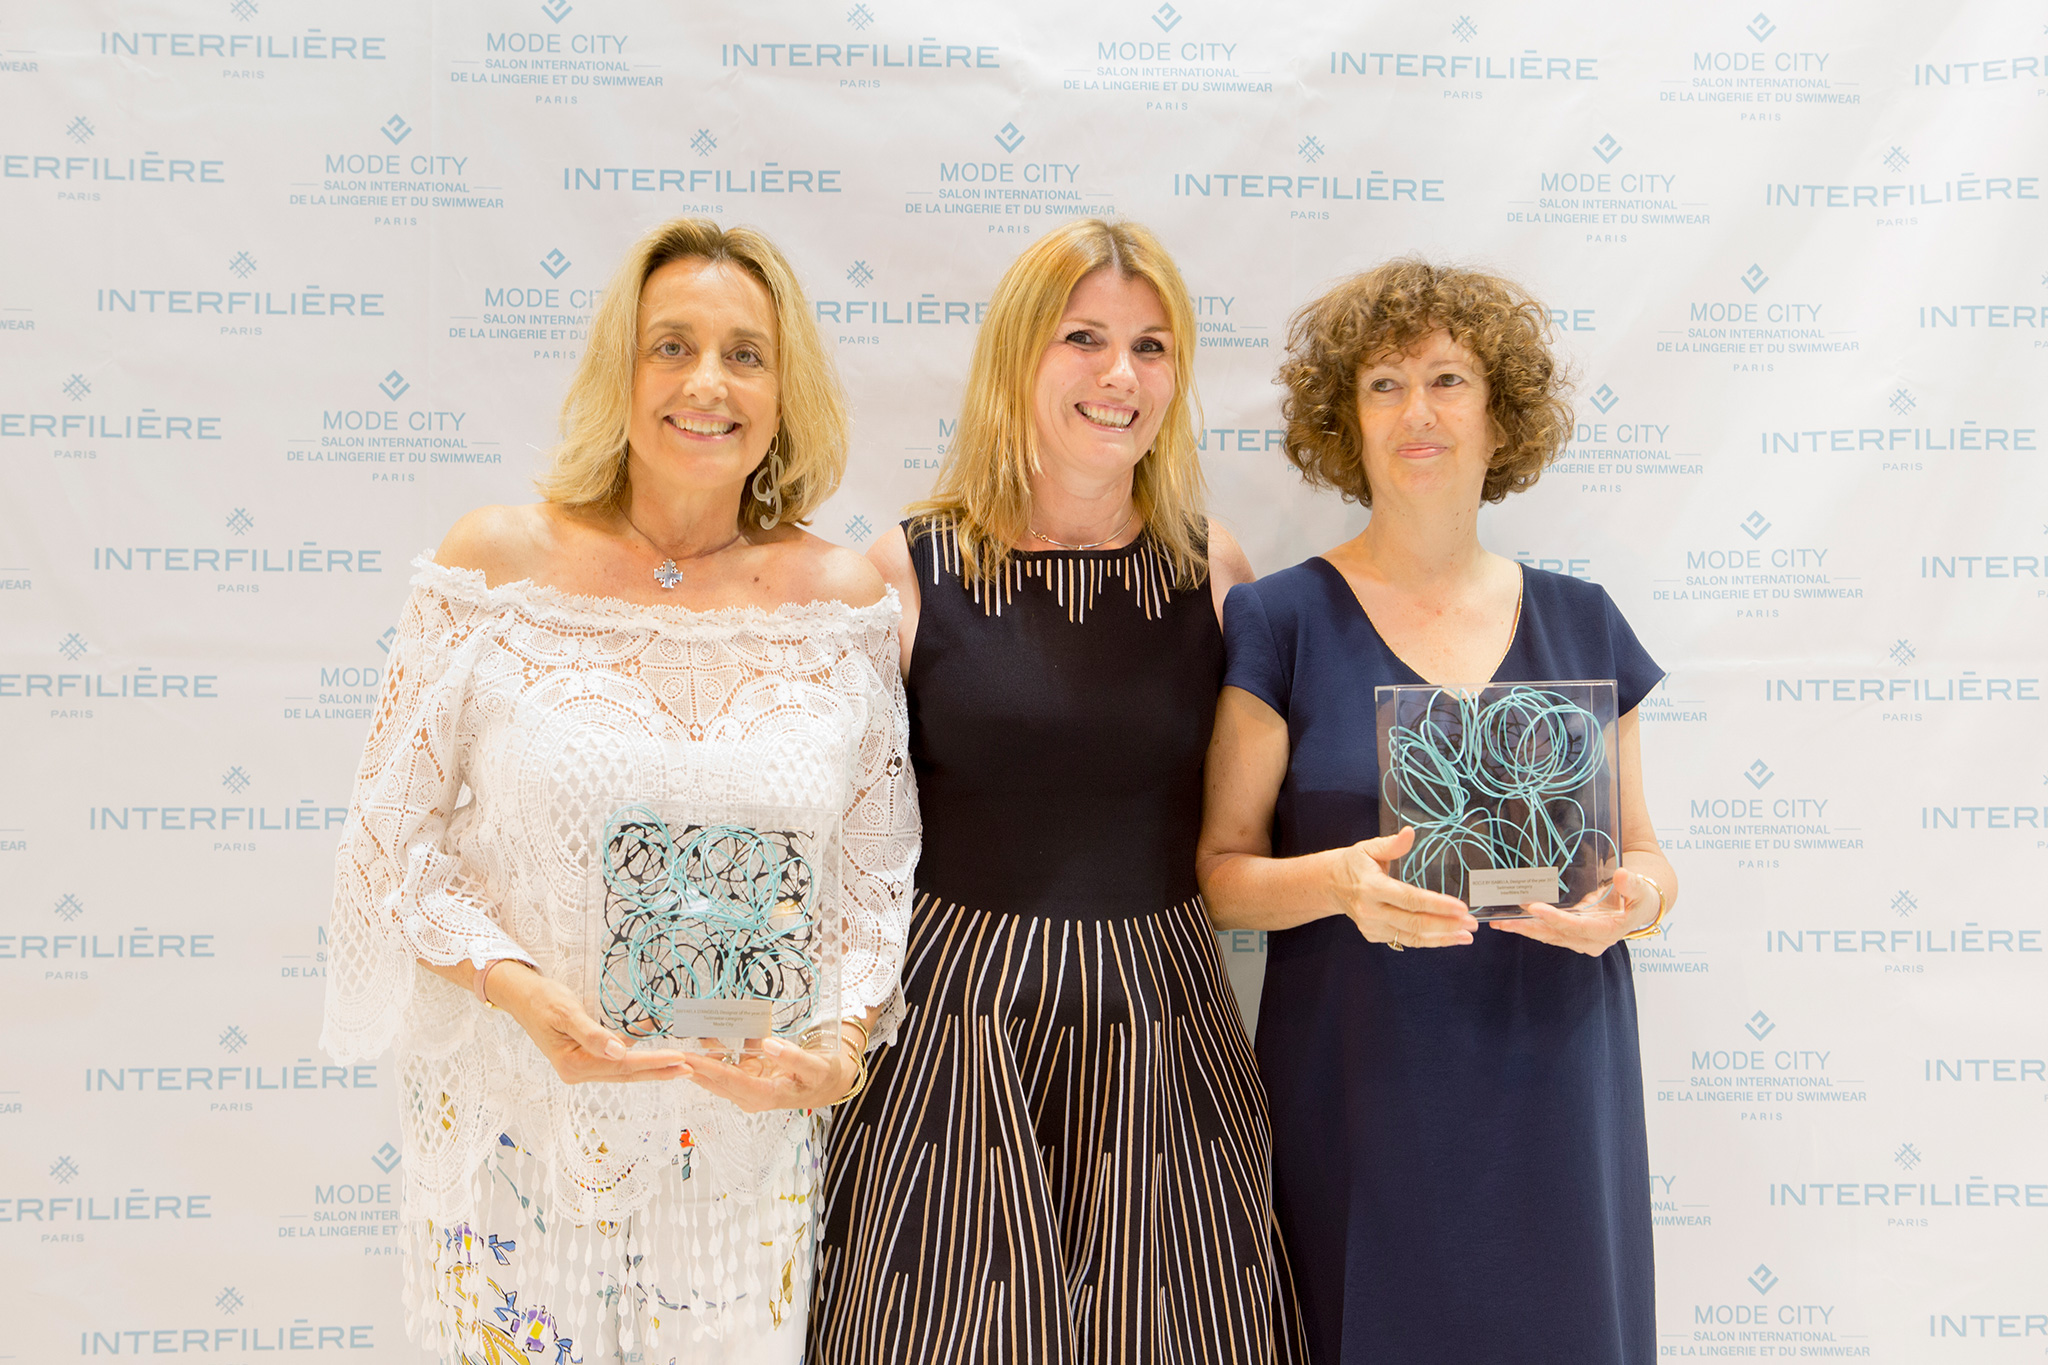 Creators of the Year, Image © Angel's Sea Studio, Courtesy of Eurovet